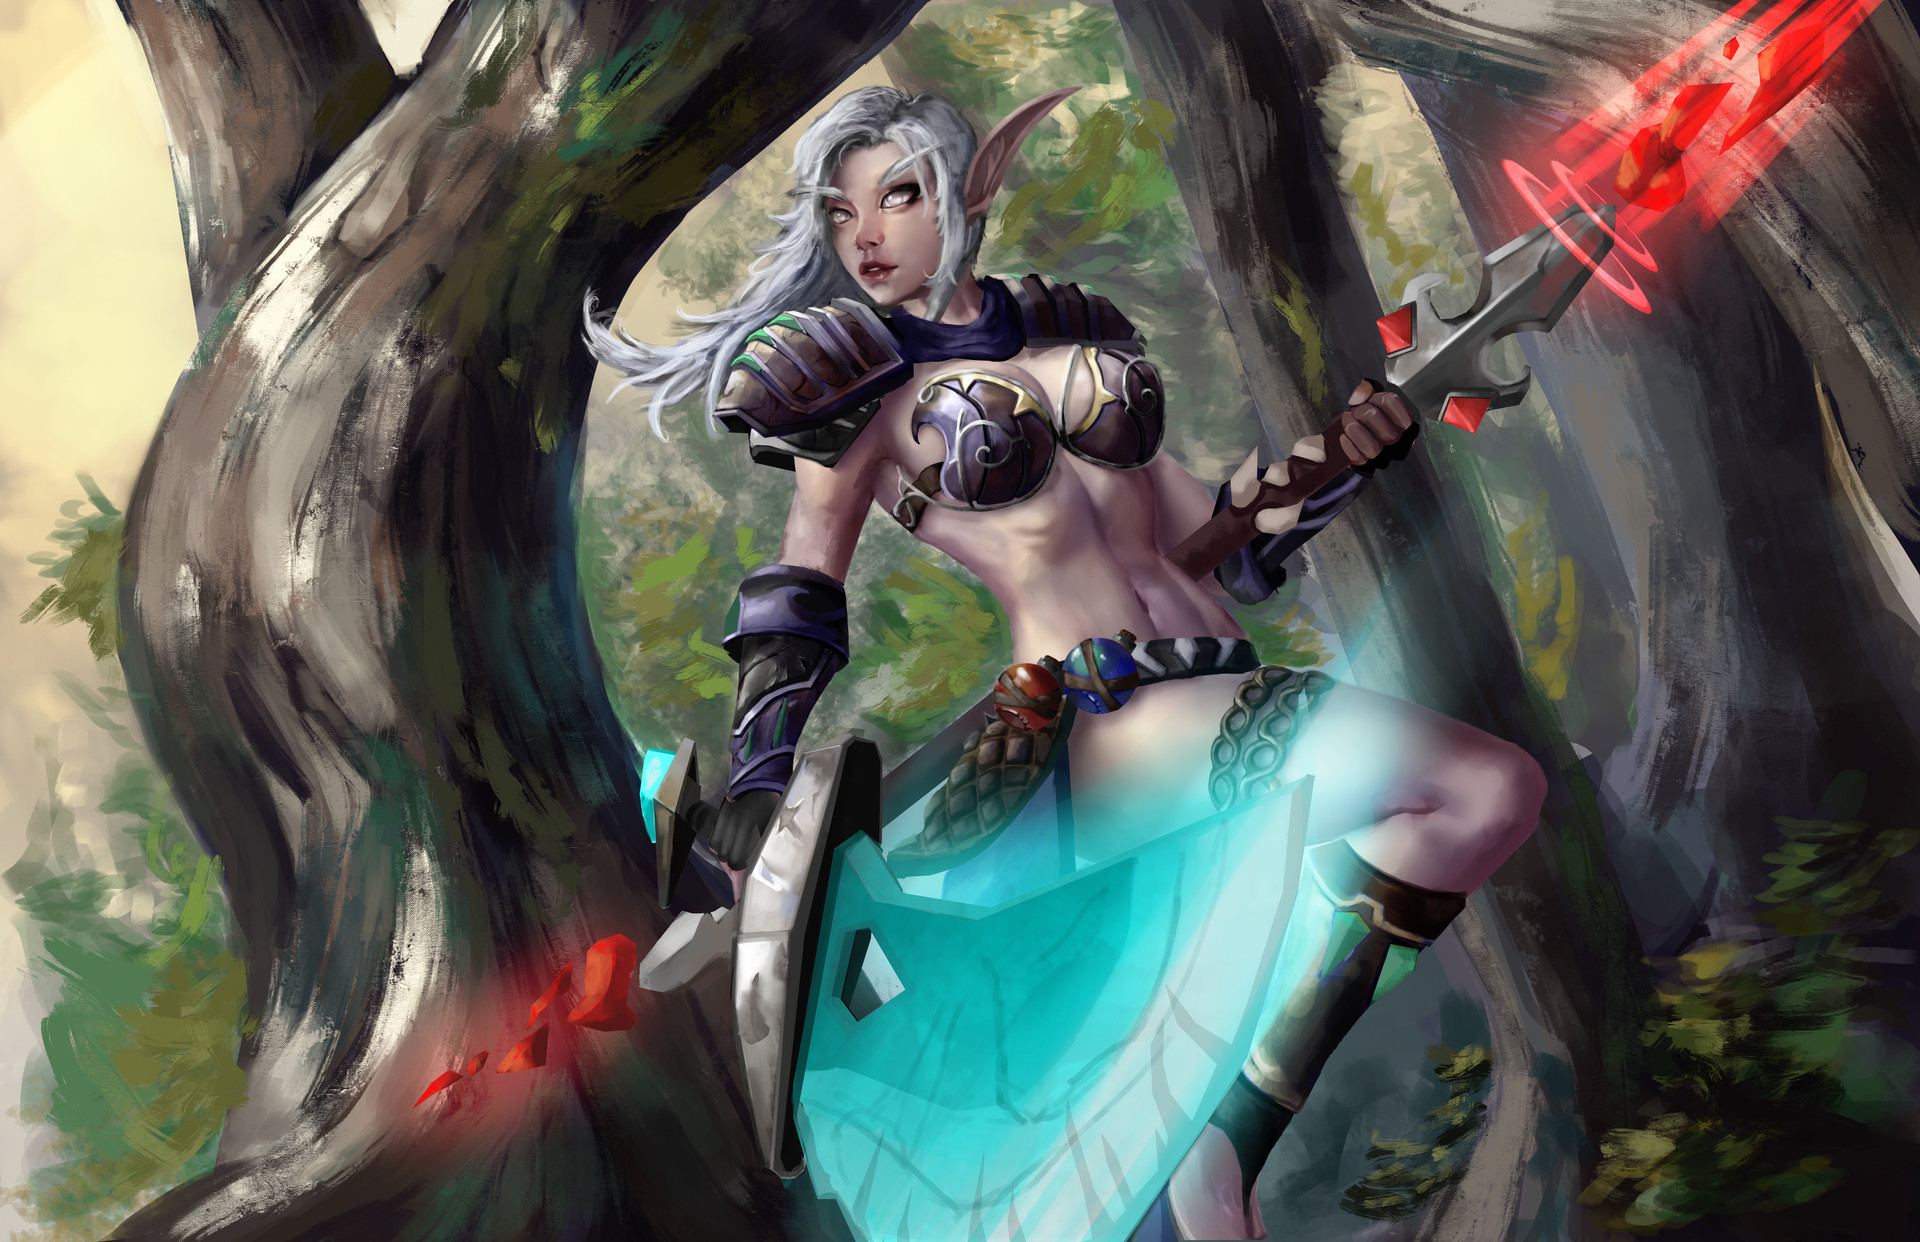 World of warcraft porn elves pic xxx streaming